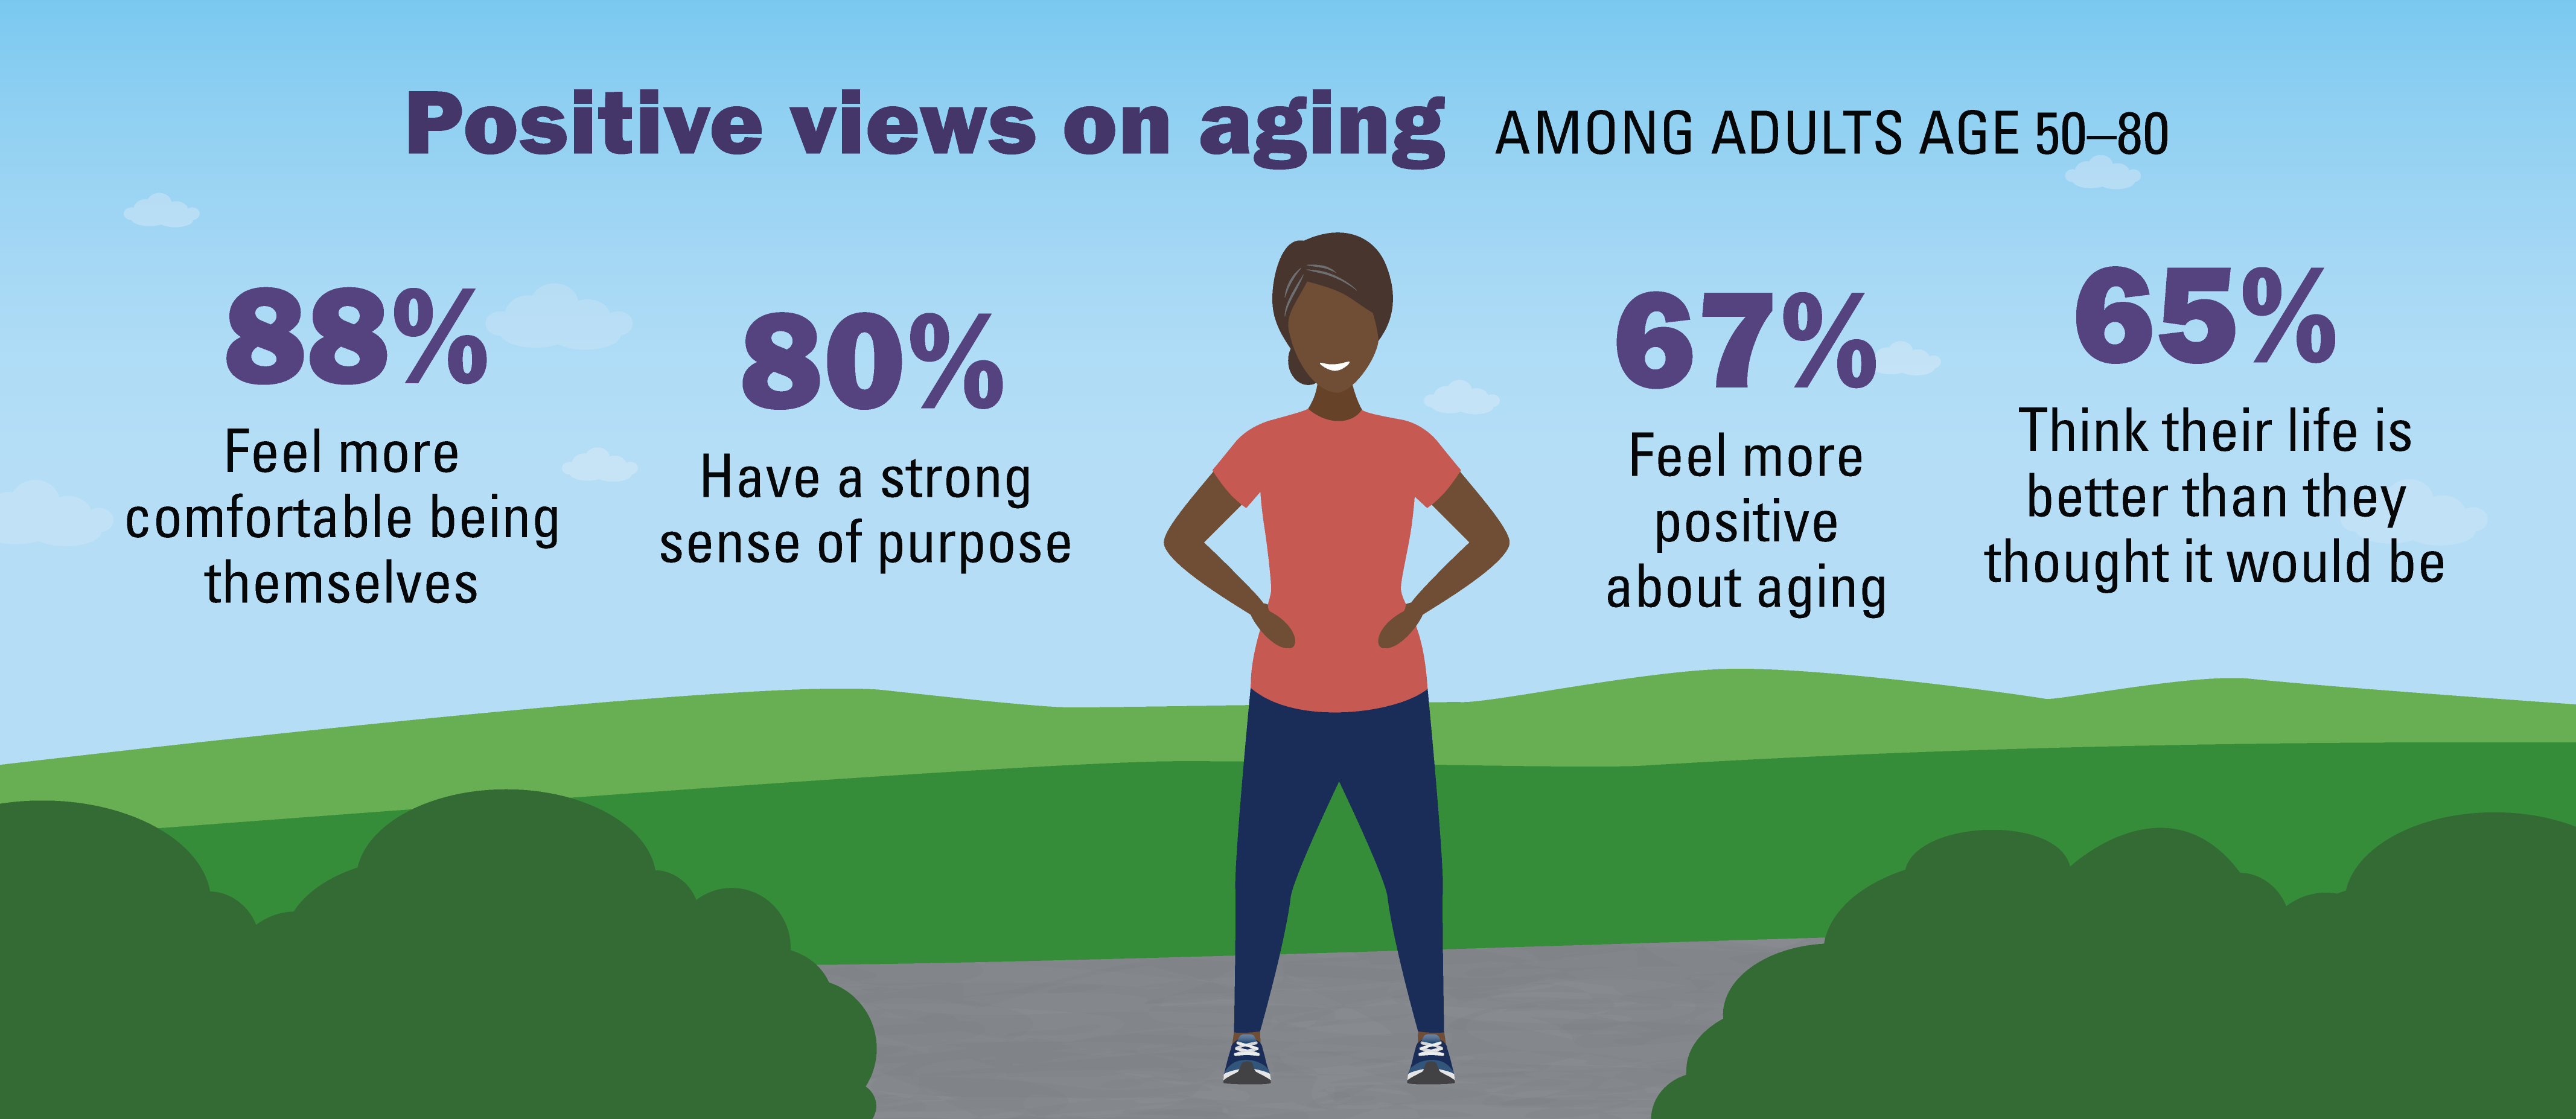 88% feel more comfortable being themselves; 80% have a strong sense of purpose; 67% feel more positive about aging; 65% think their life is better than they thought it would be